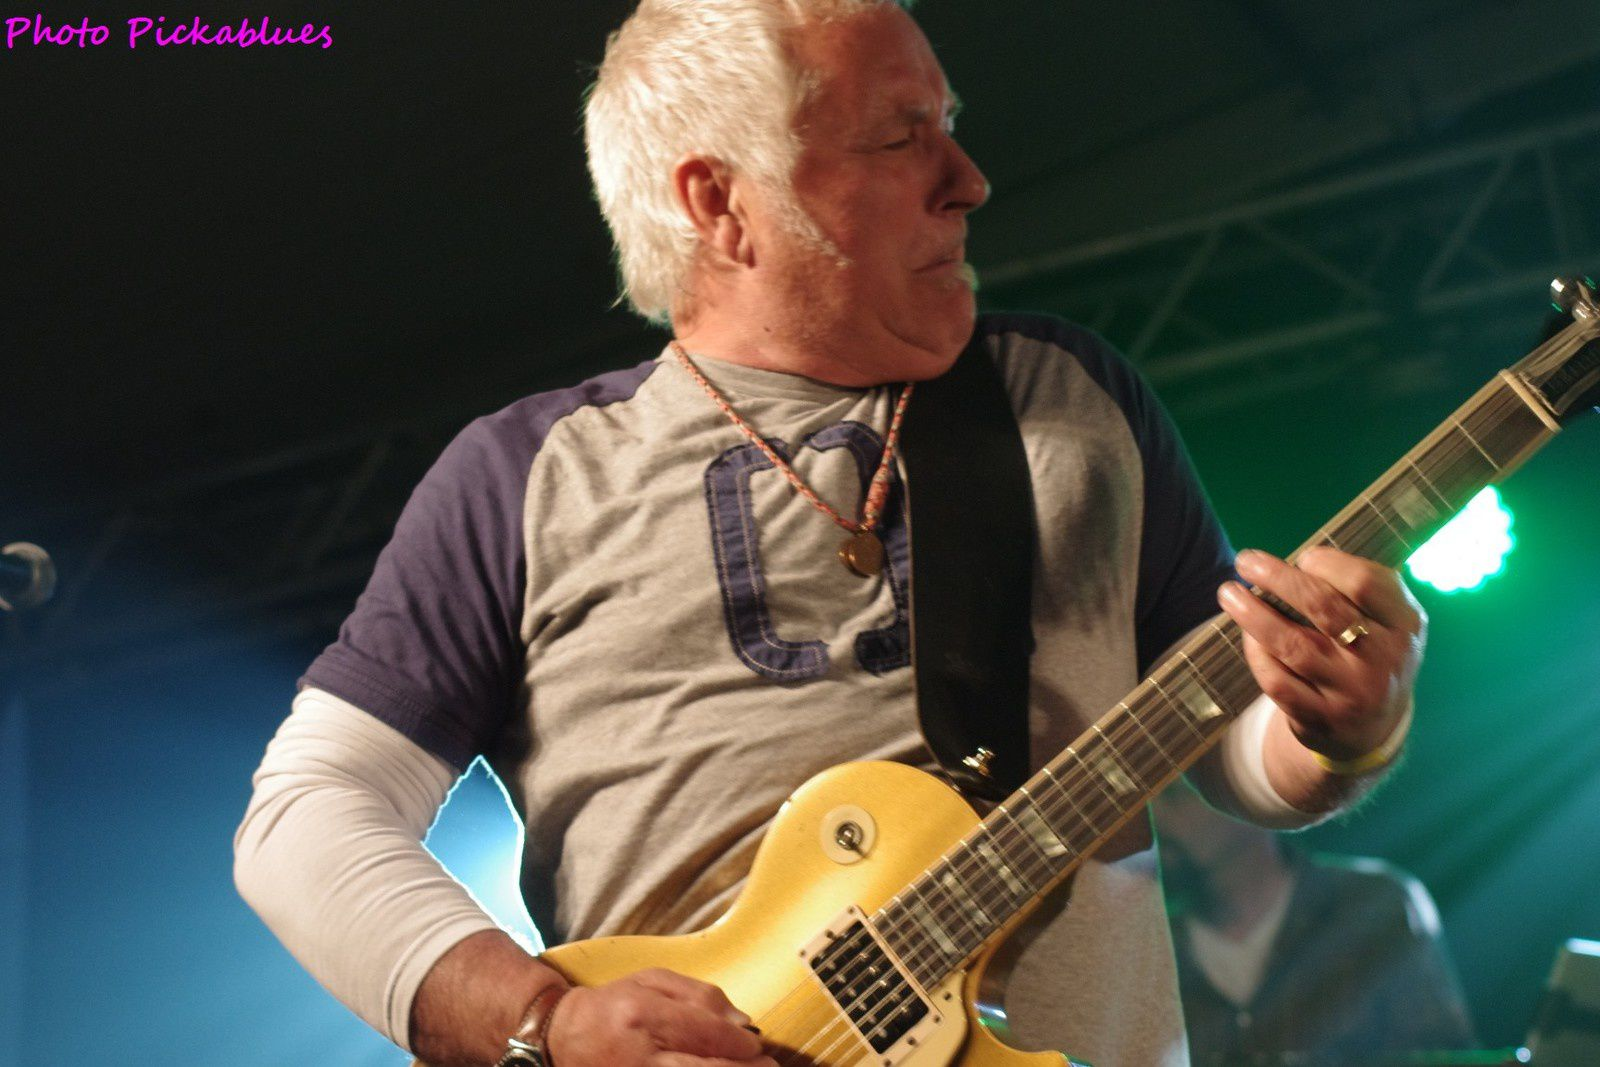 Chris Daniels & The Kings feat J.R Band & Freddy Gowdy - 29 mai 2015 - Duvel Blues, Puurs (B)